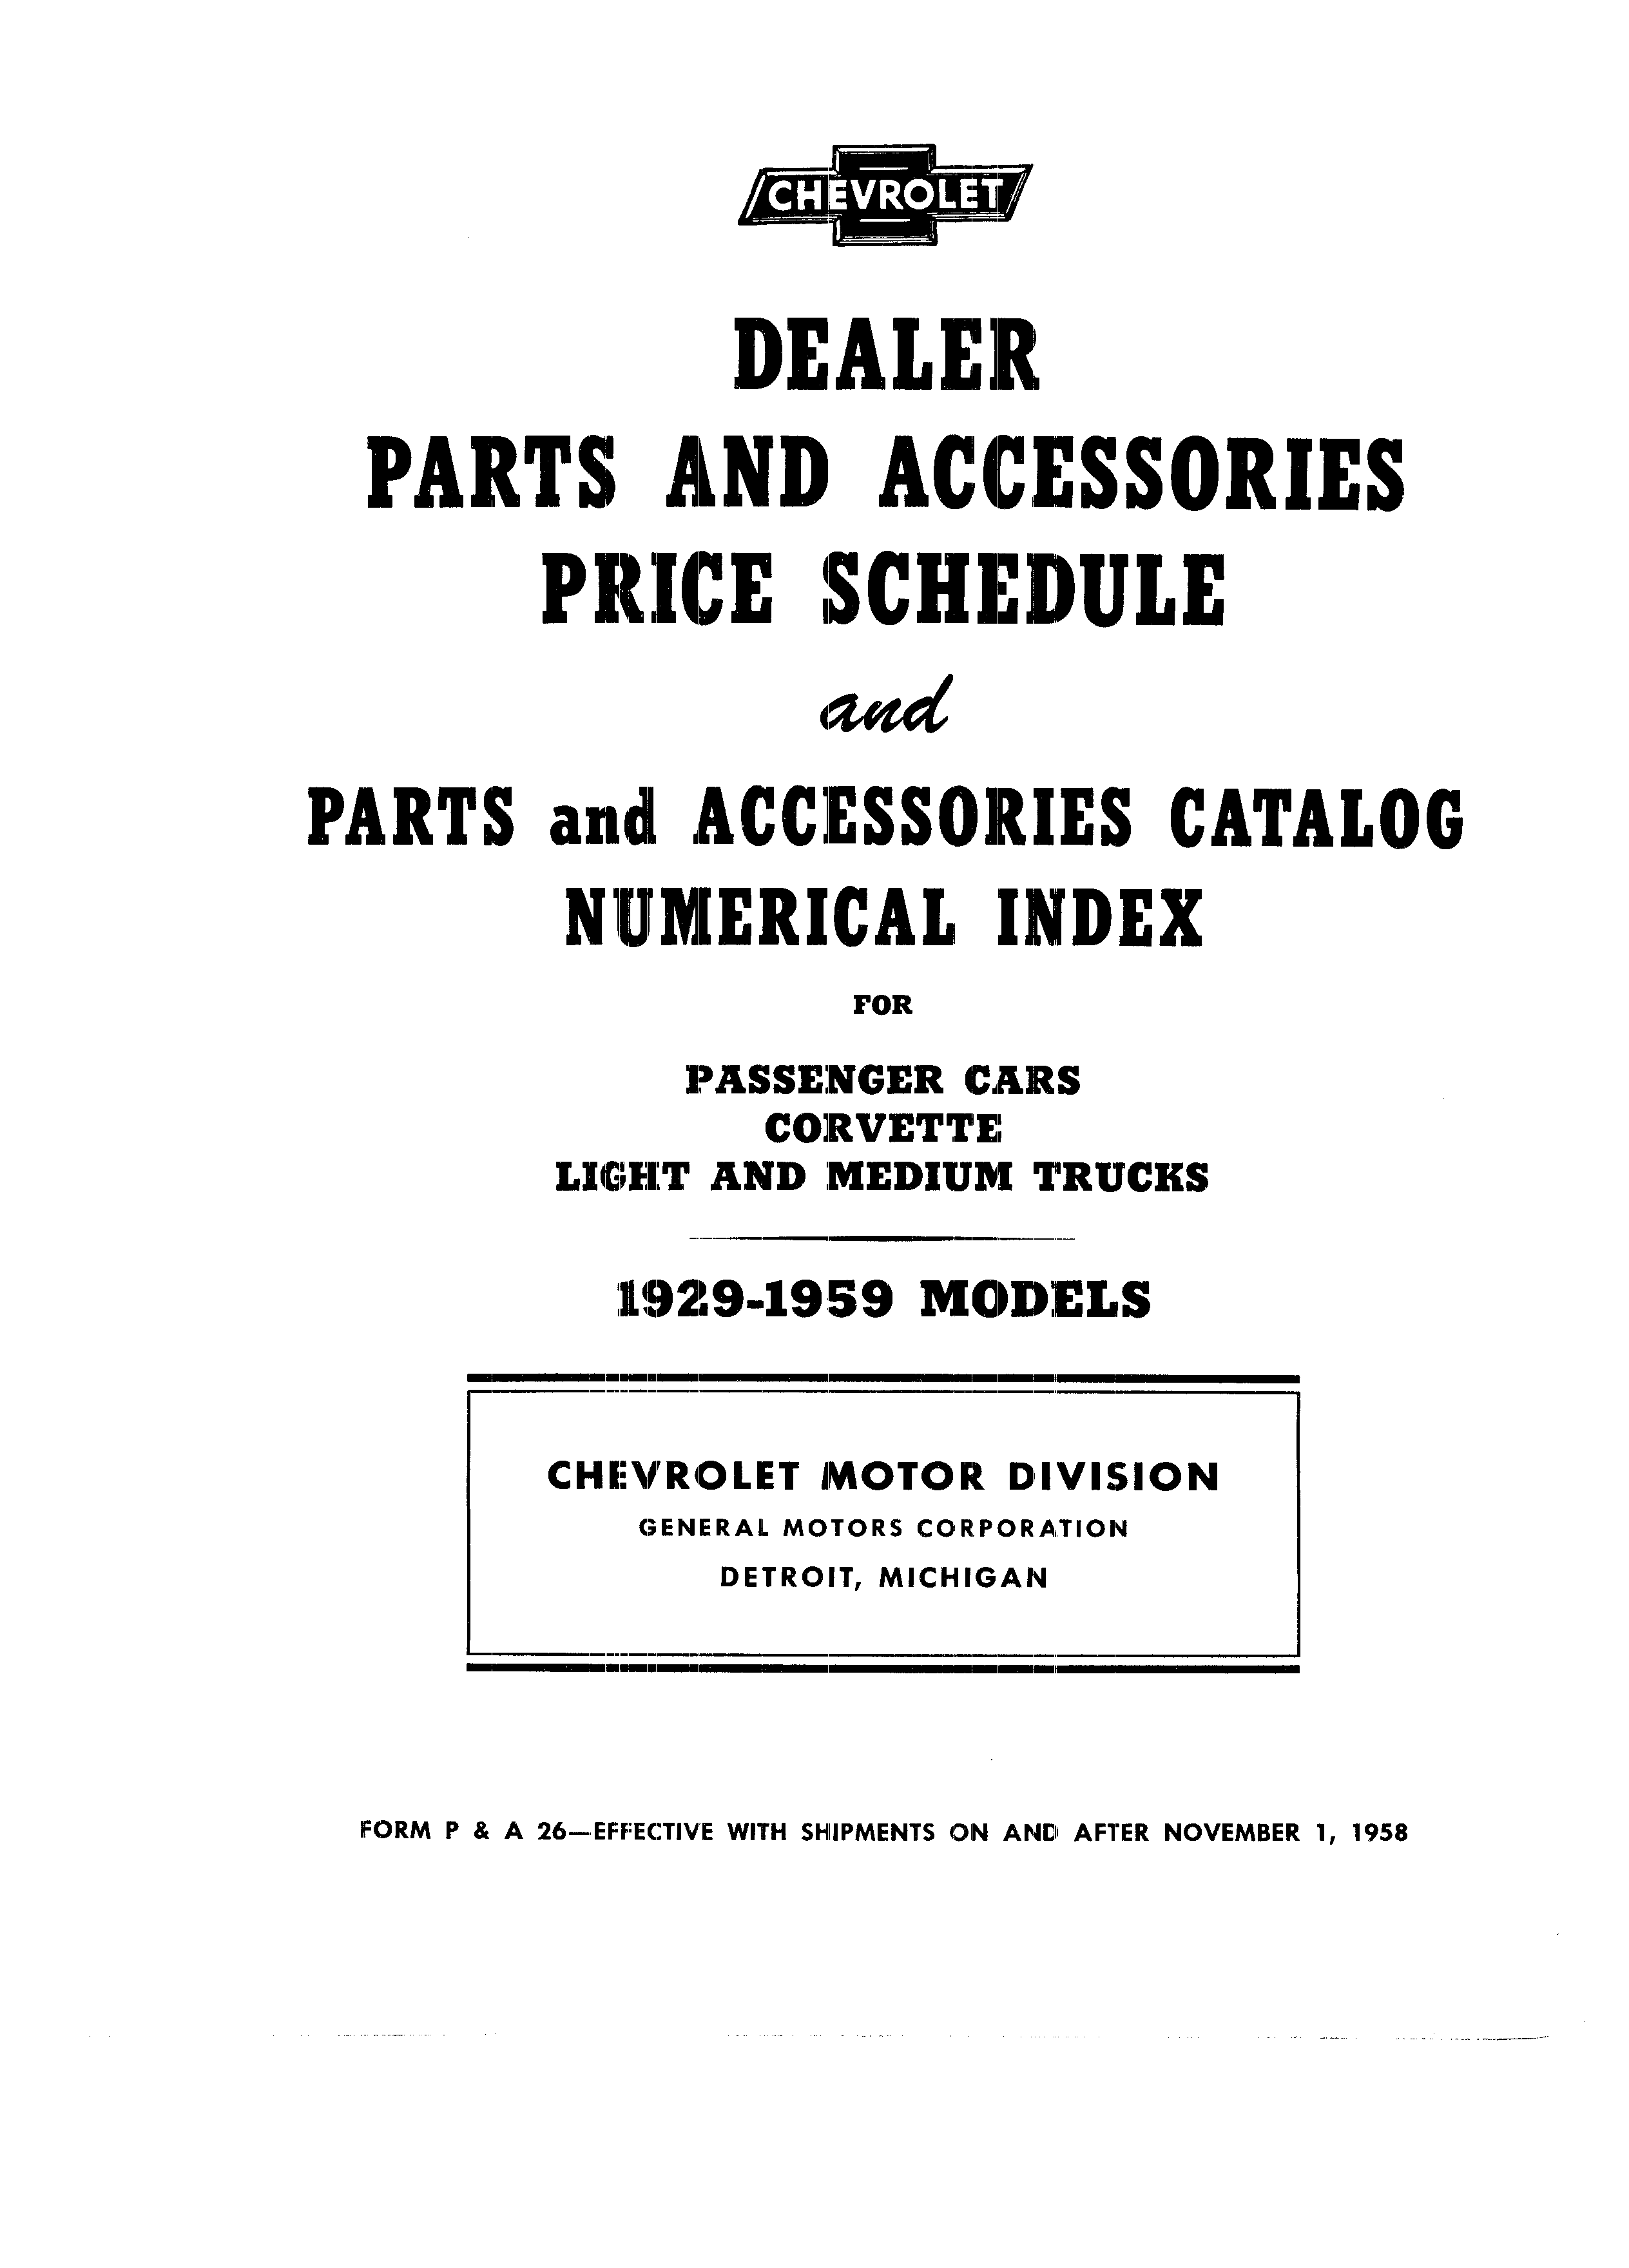 Dealer Parts and Accessories Price Schedule and Numerial Index March 1958